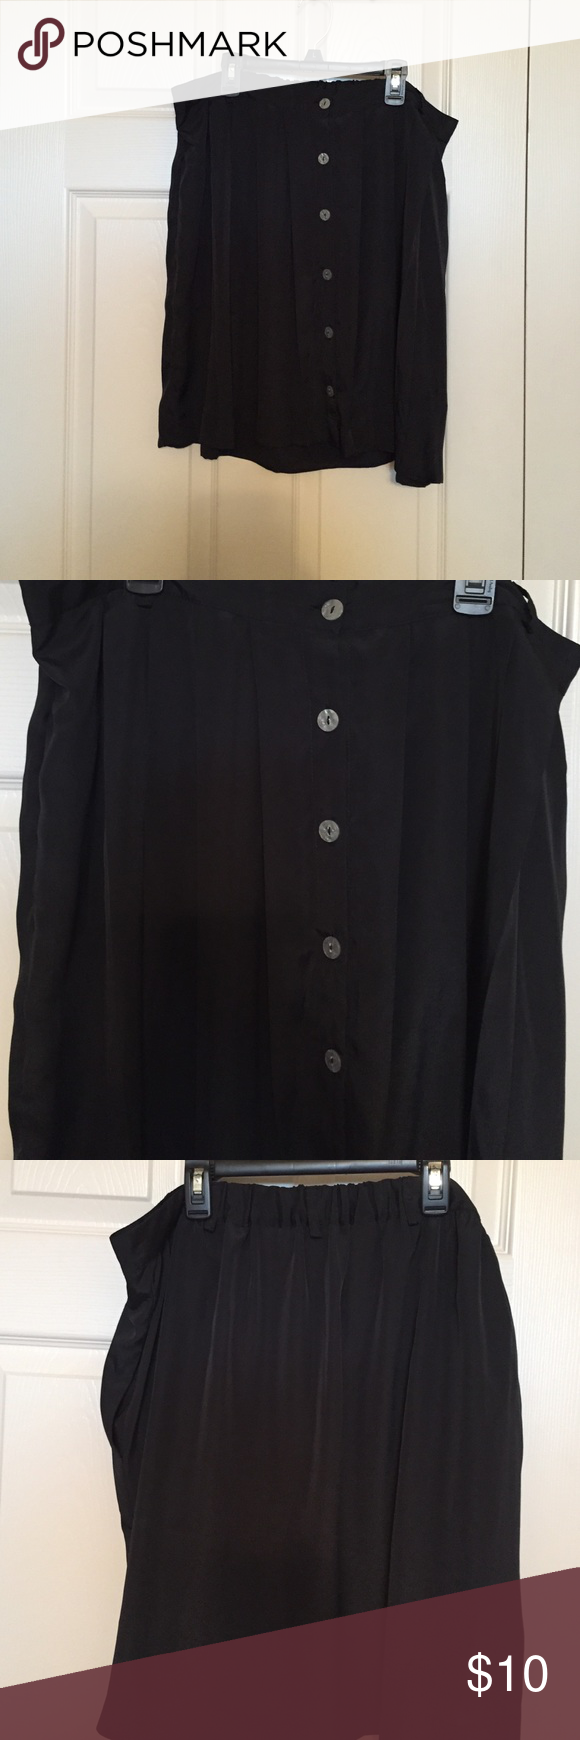 Black pleated button-down skirt with belt loops. Black pleated button-down skirt with belt loops.  From top to hem it measures 21in. Xhilaration Skirts Midi